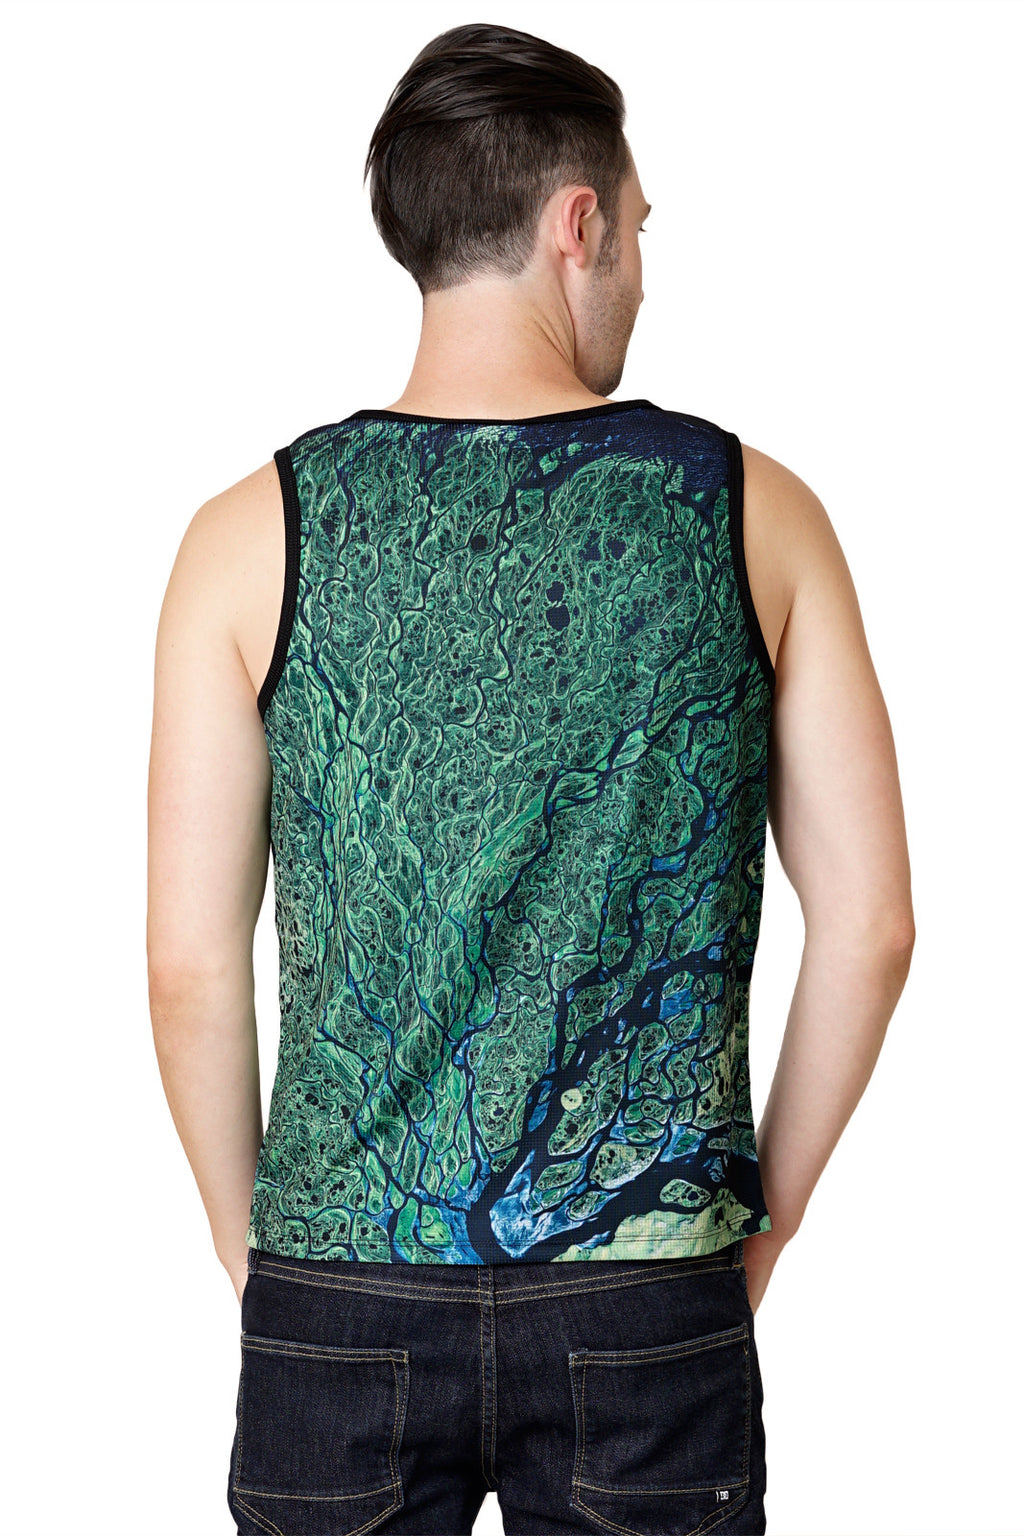 All Over Printed Mens Graphic Tank Top-Performance Clothing-Nature Print Clothing